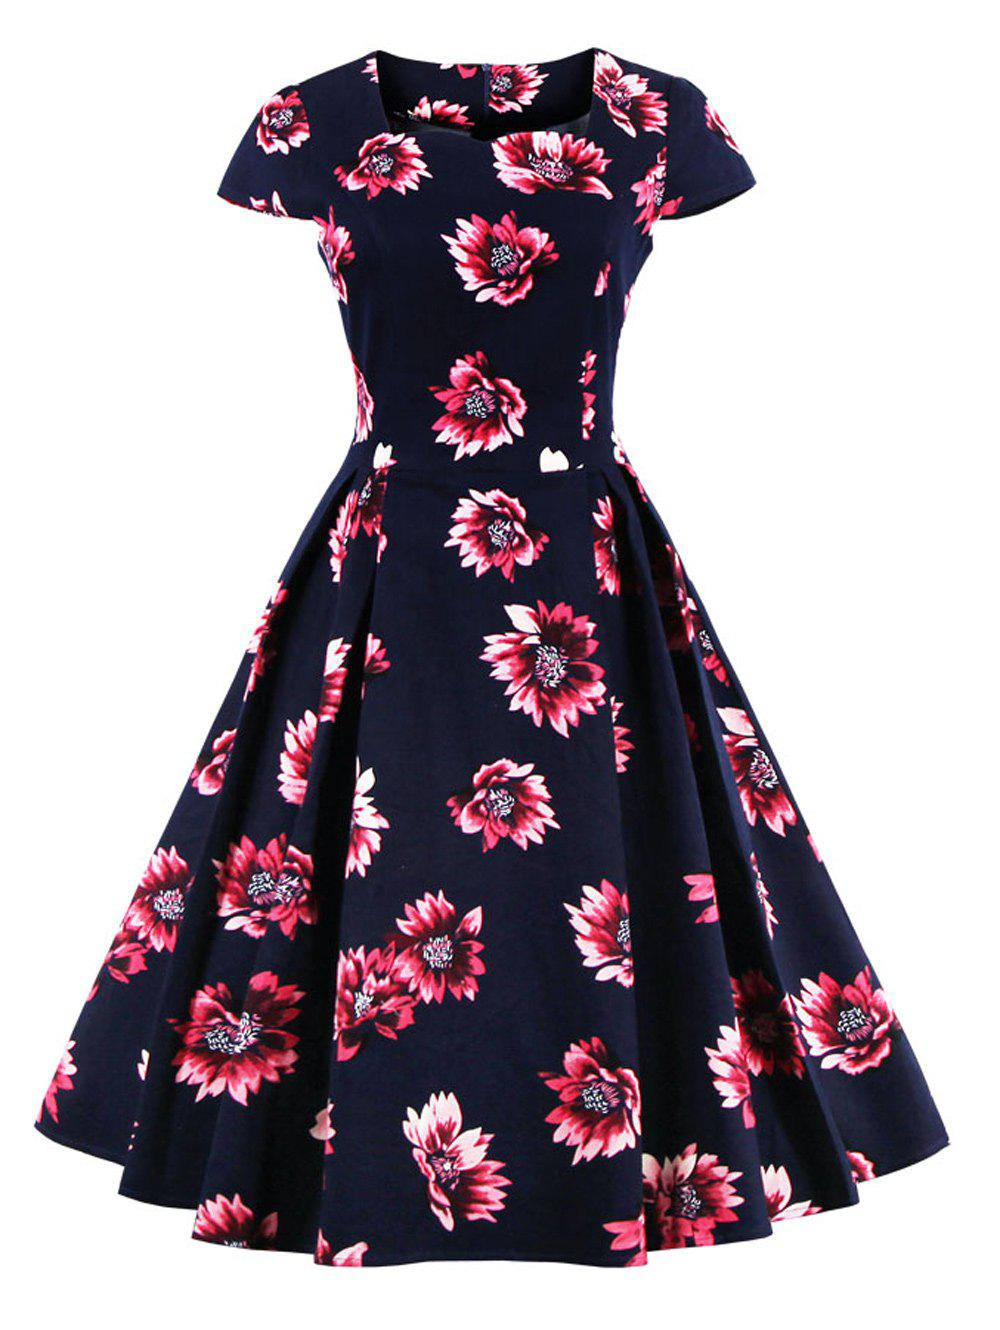 Retro Sweetheart Neck Cape Sleeve Floral Print Skater Dress - PURPLISH BLUE L